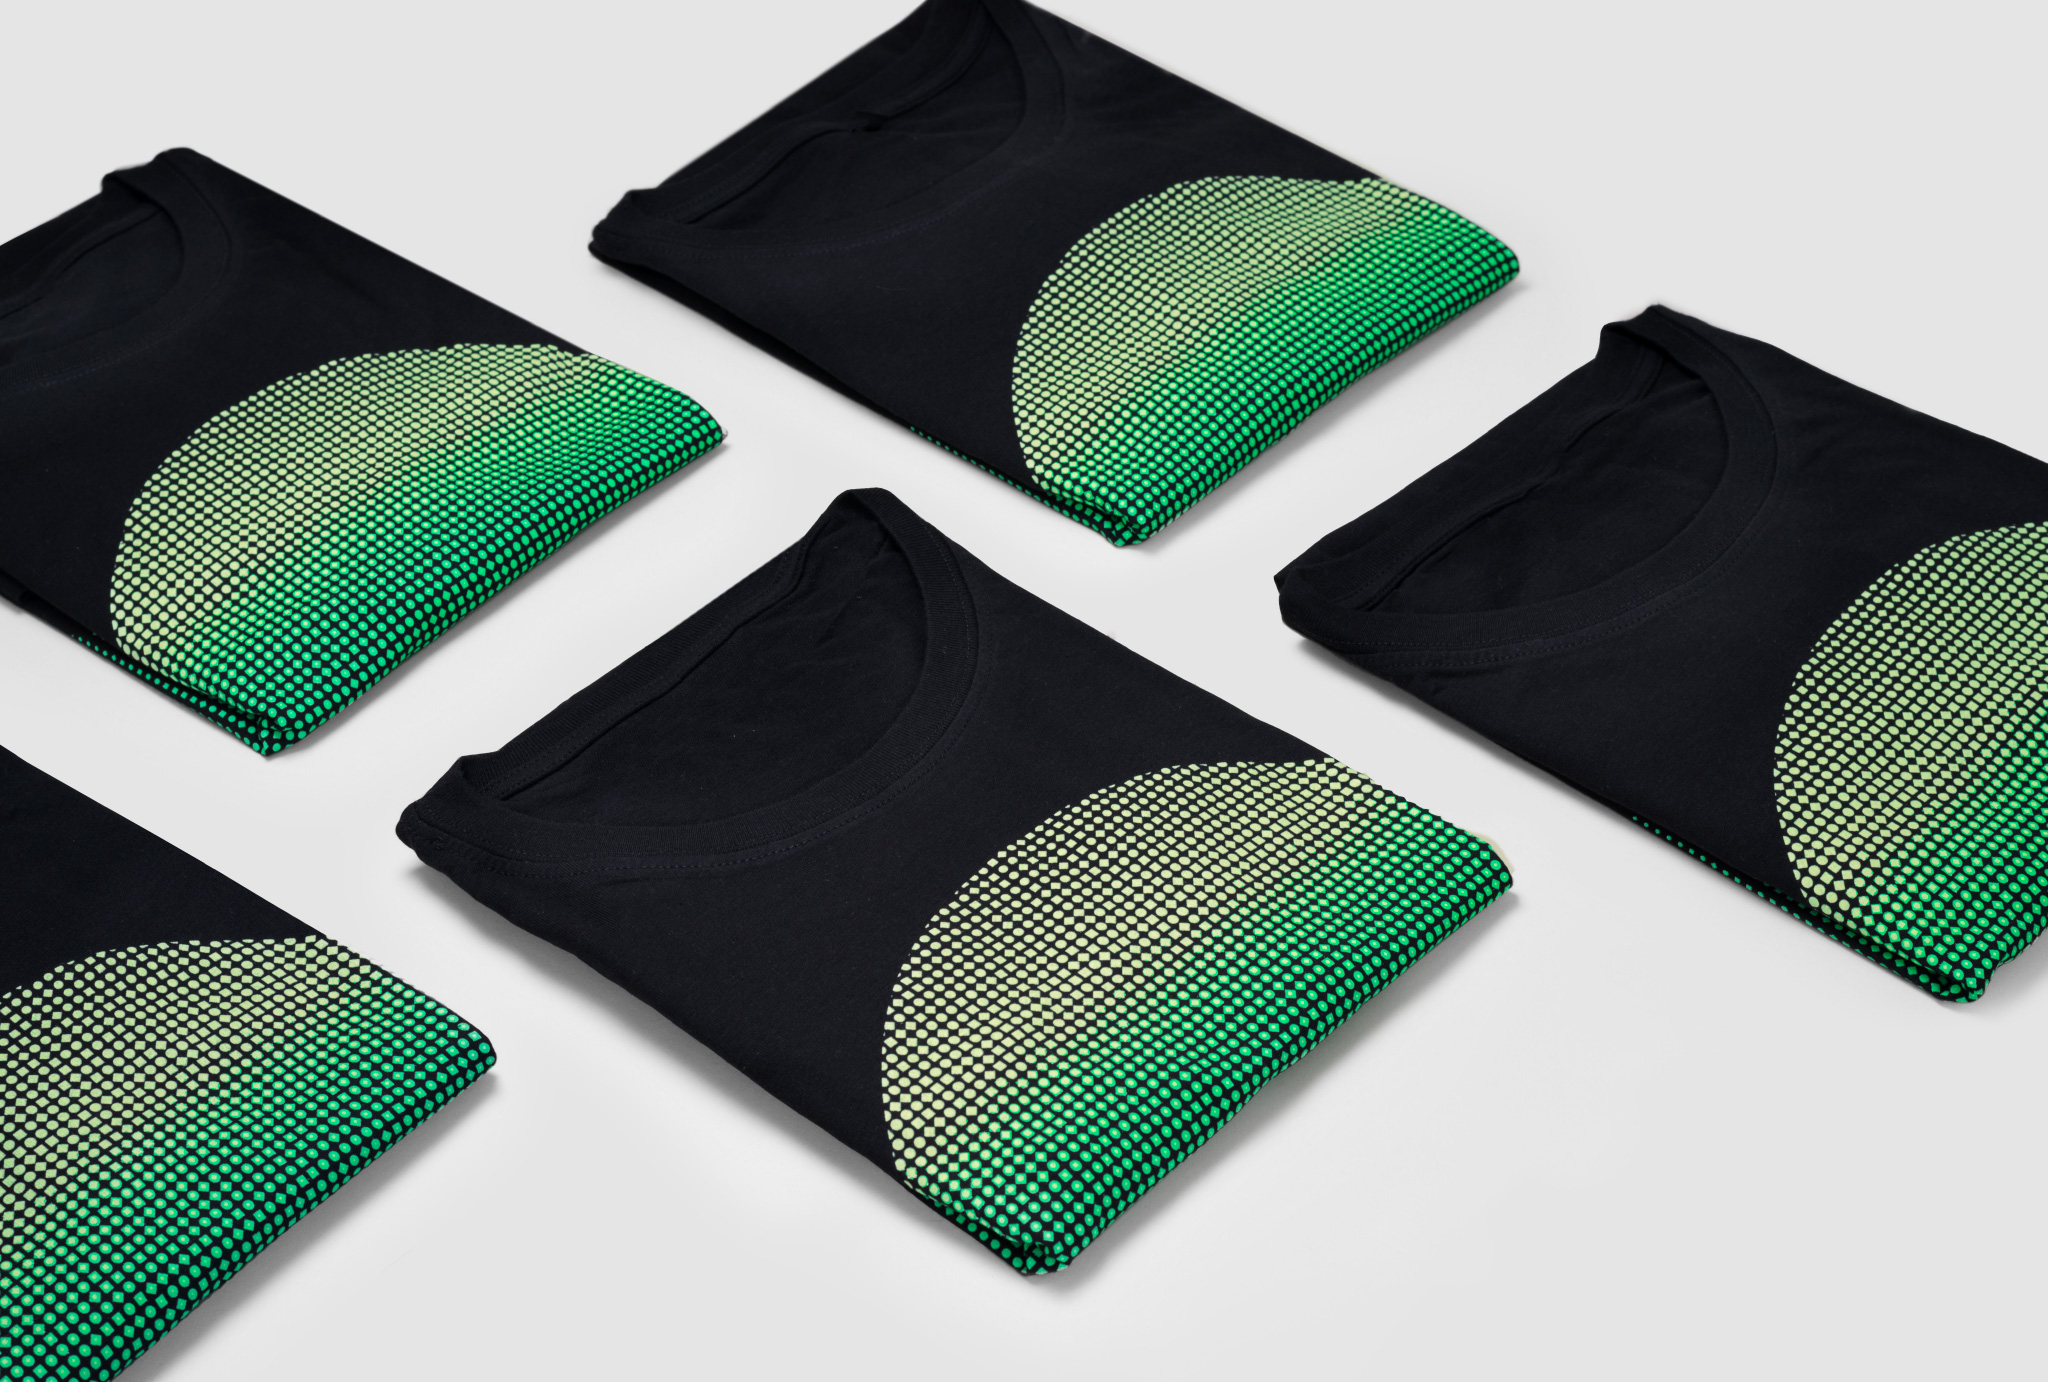 folden black t-shirts with printed green circle next to each other